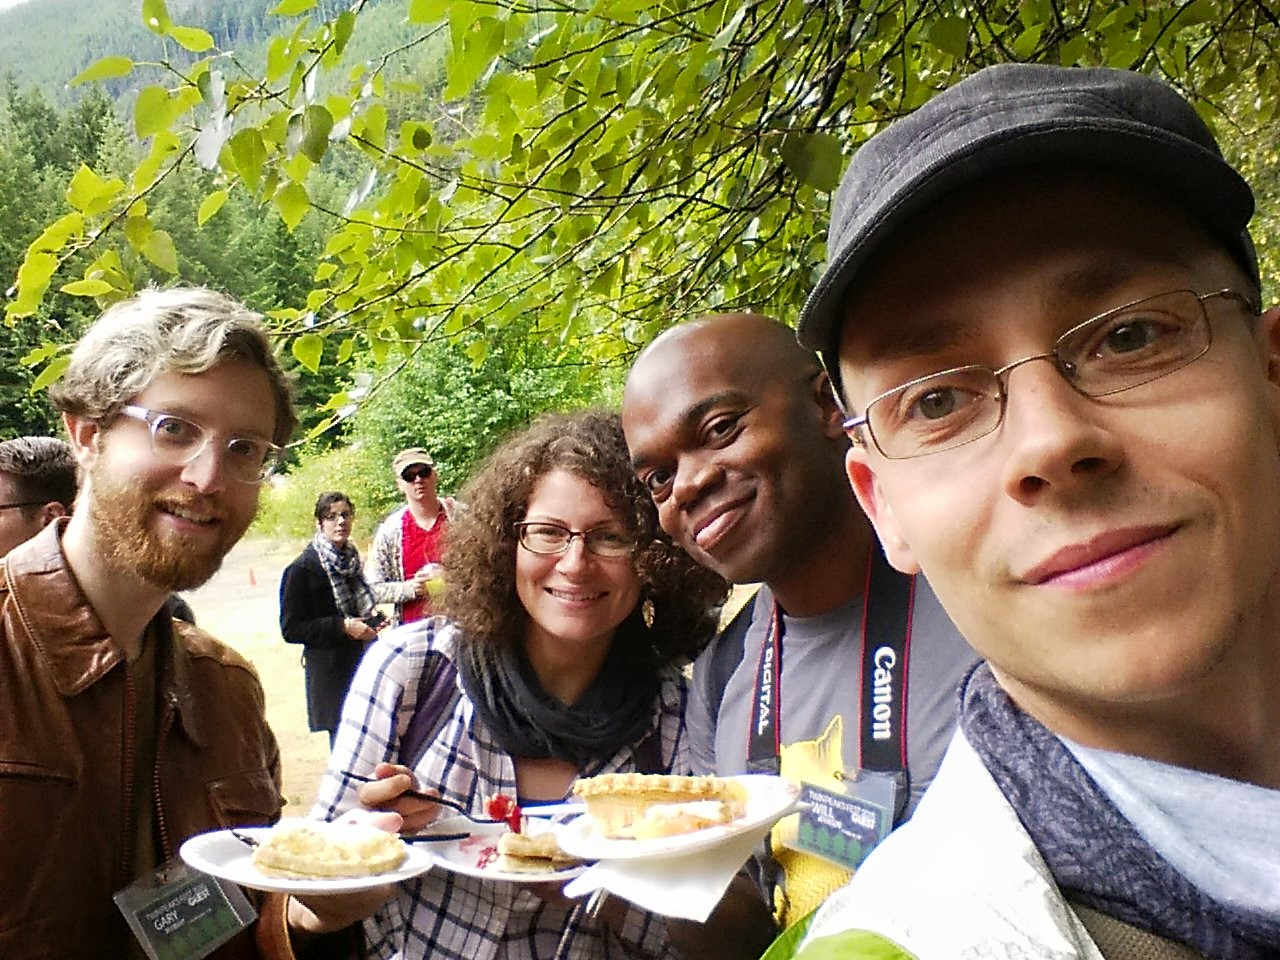 Me at the 2015 Twin Peaks Fest in WA with The Twin Peaks Podcast's Melanie, Will, and Matt.